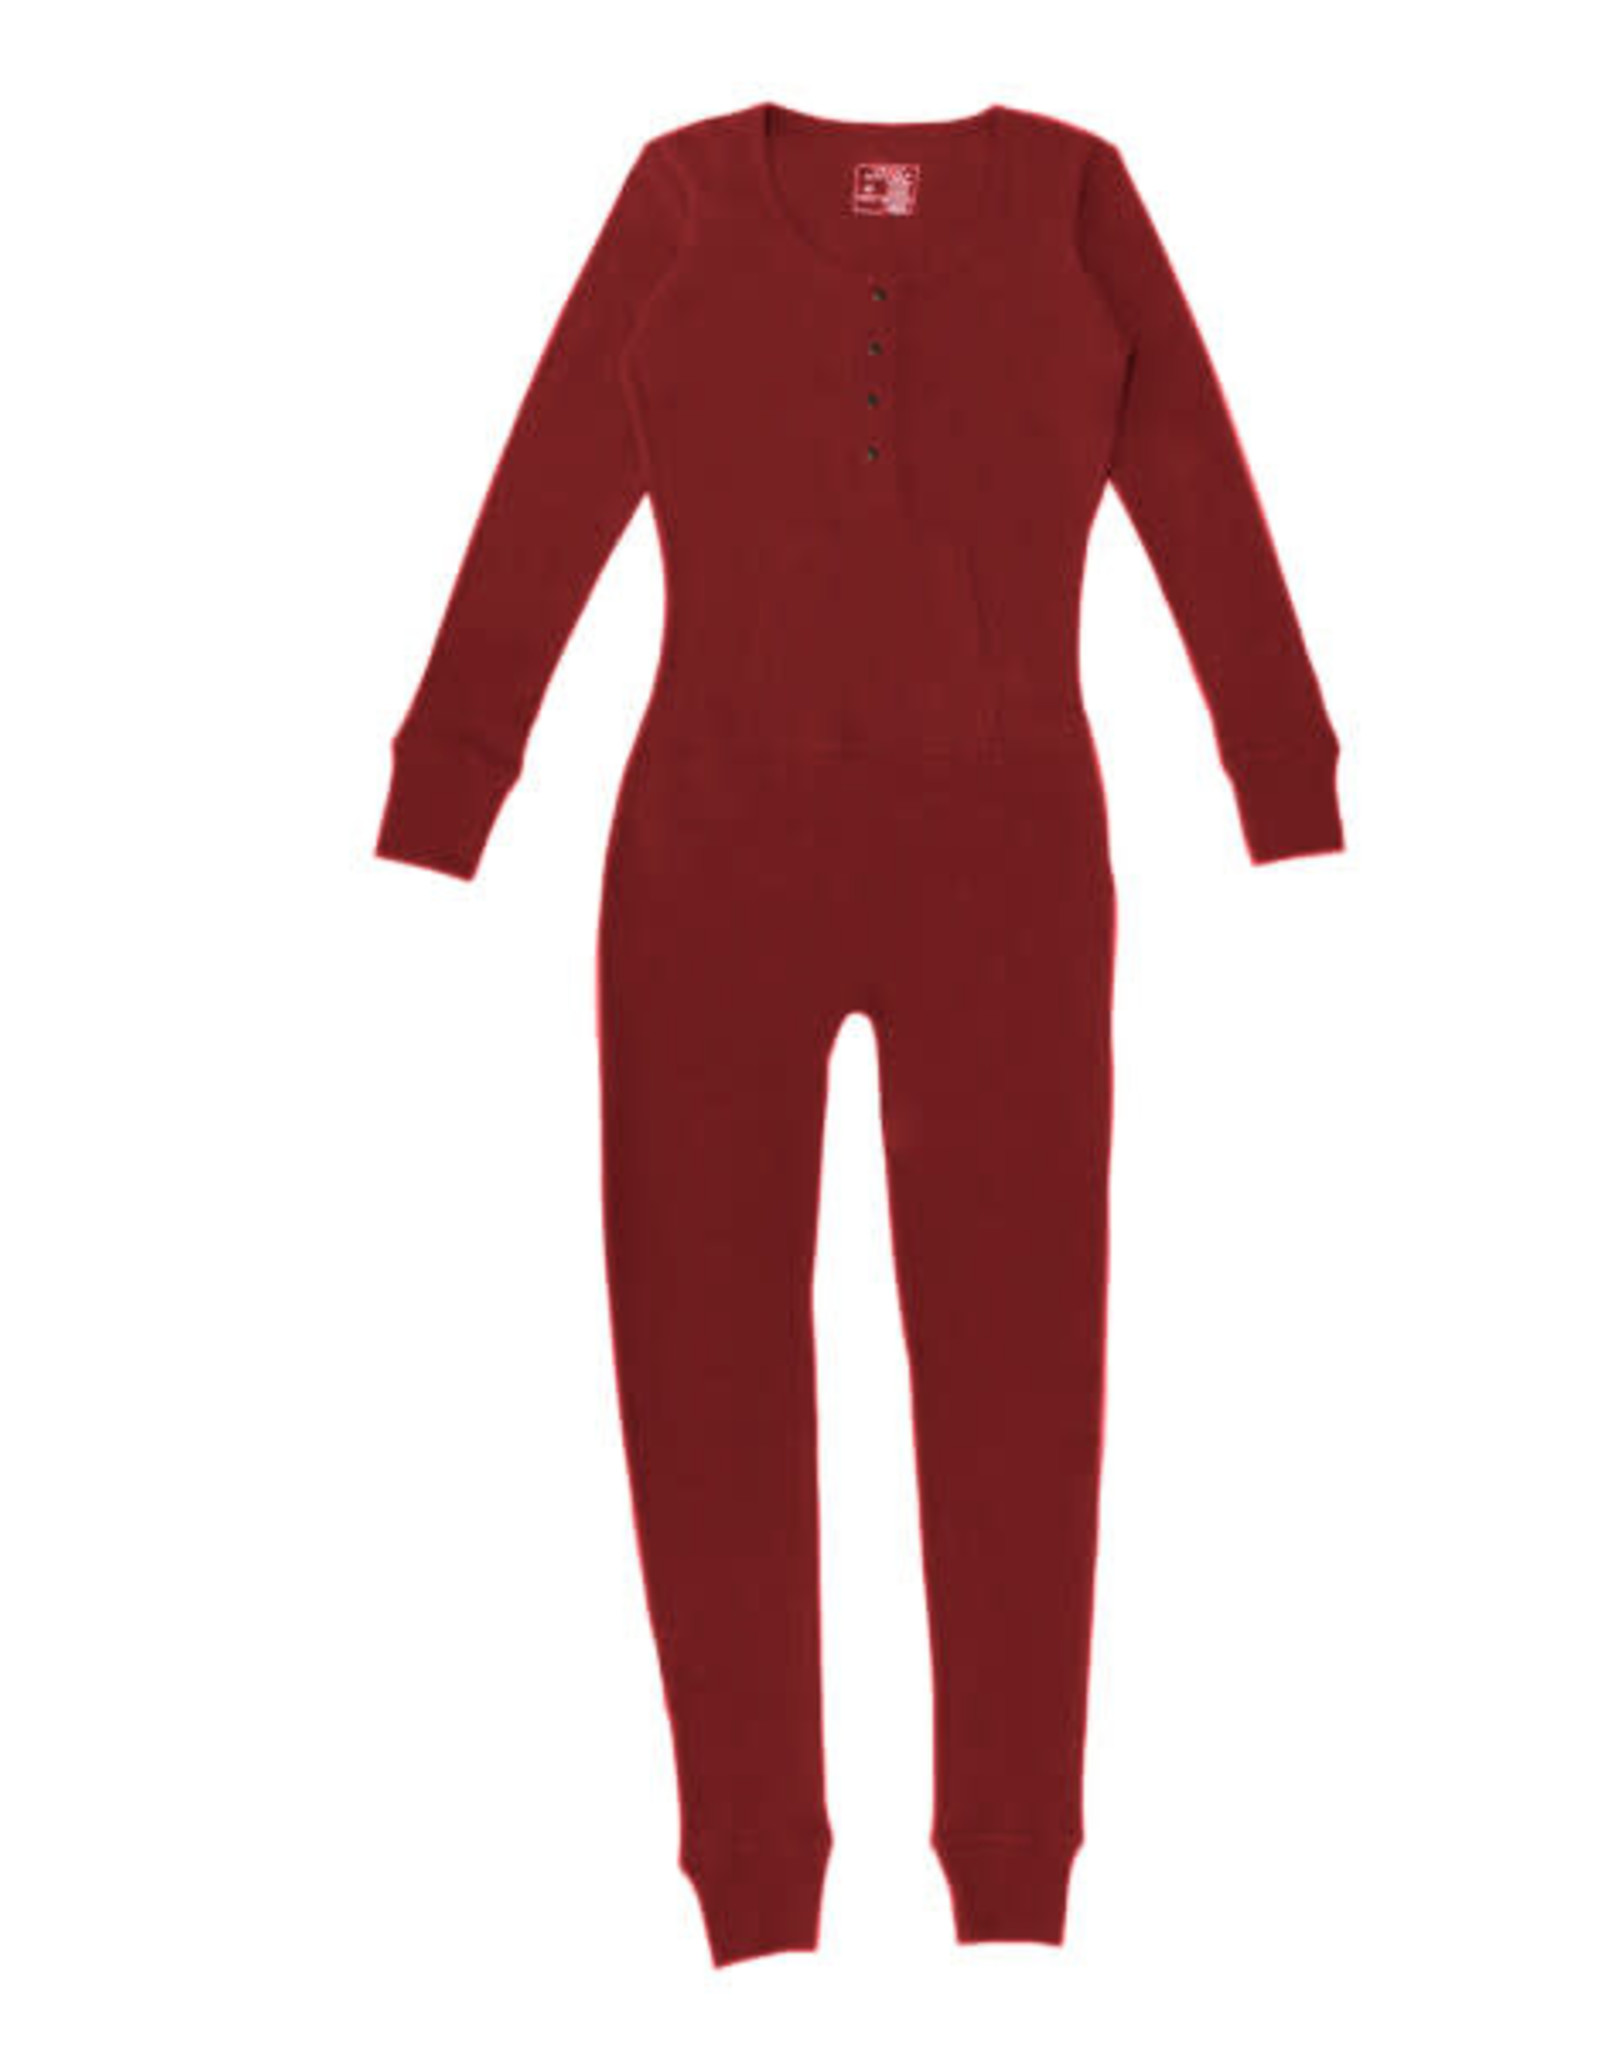 L'oved Baby Women's Thermal Onesie Crimson